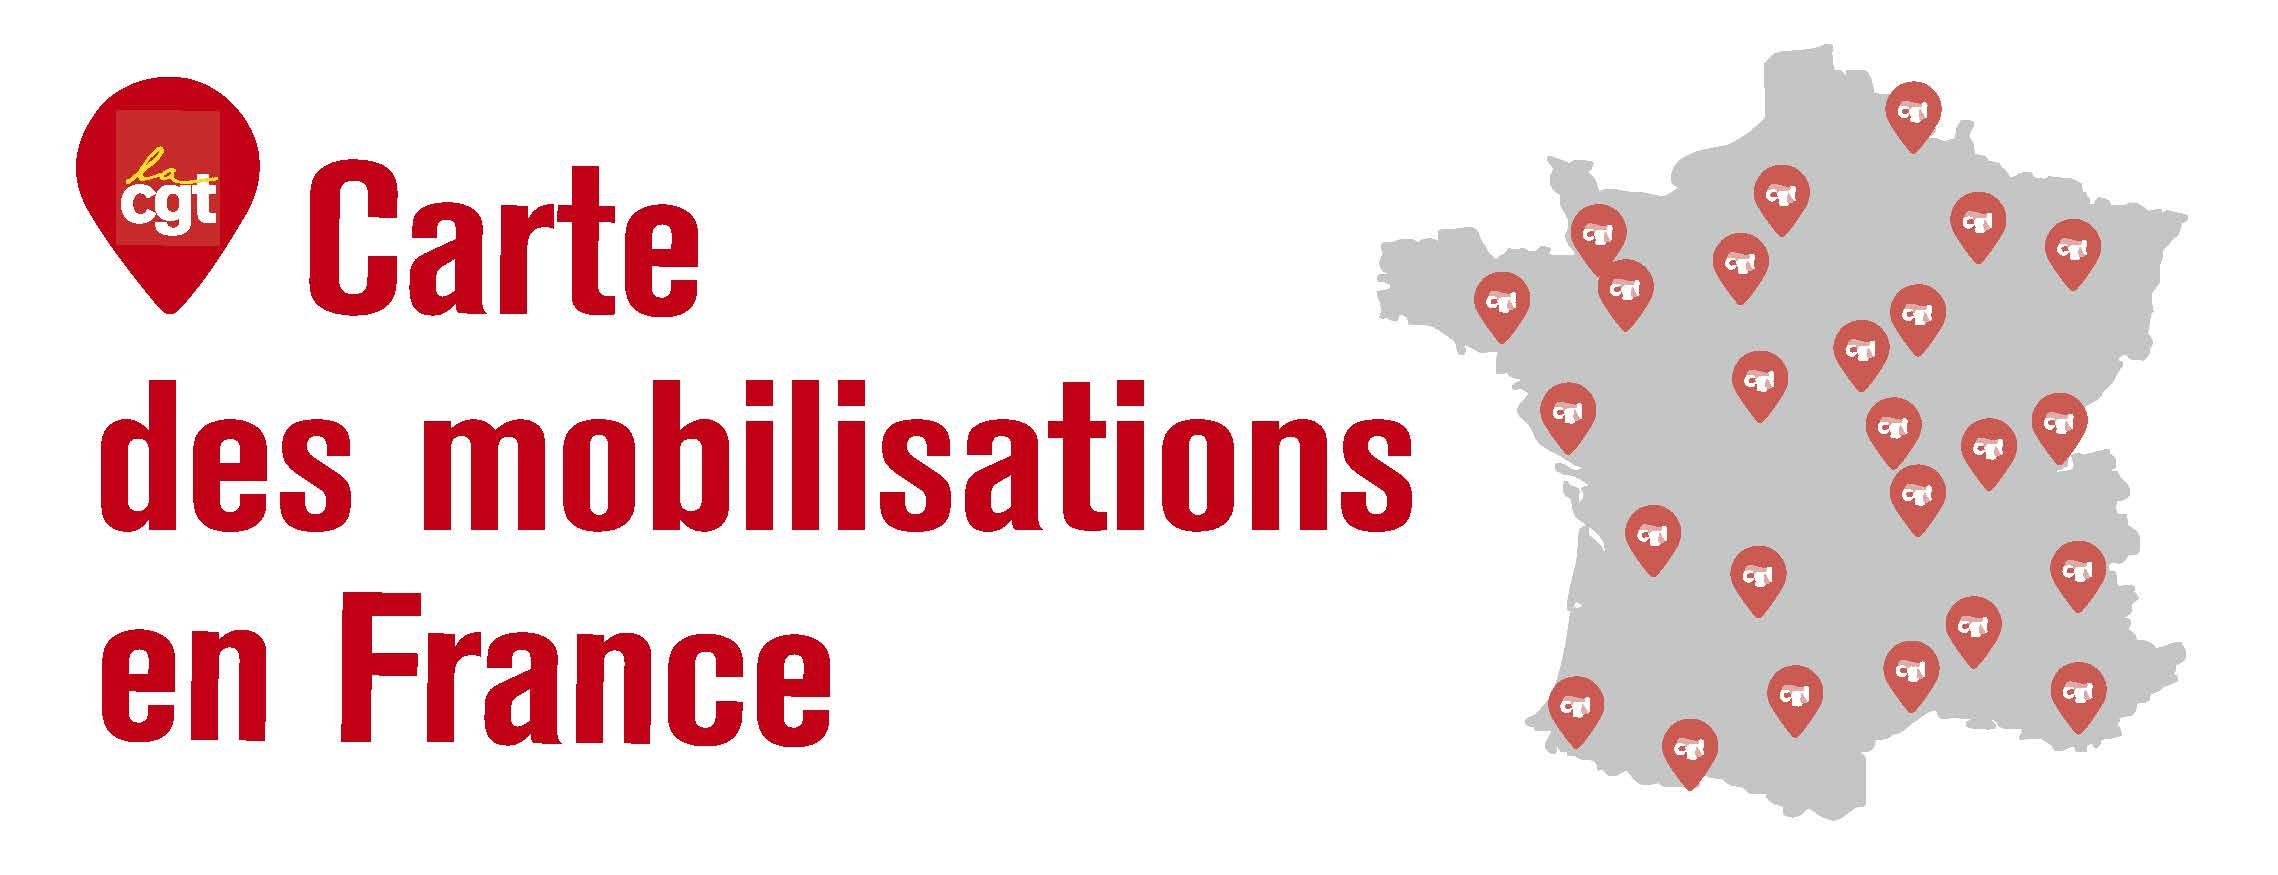 Carte des mobilisations en France